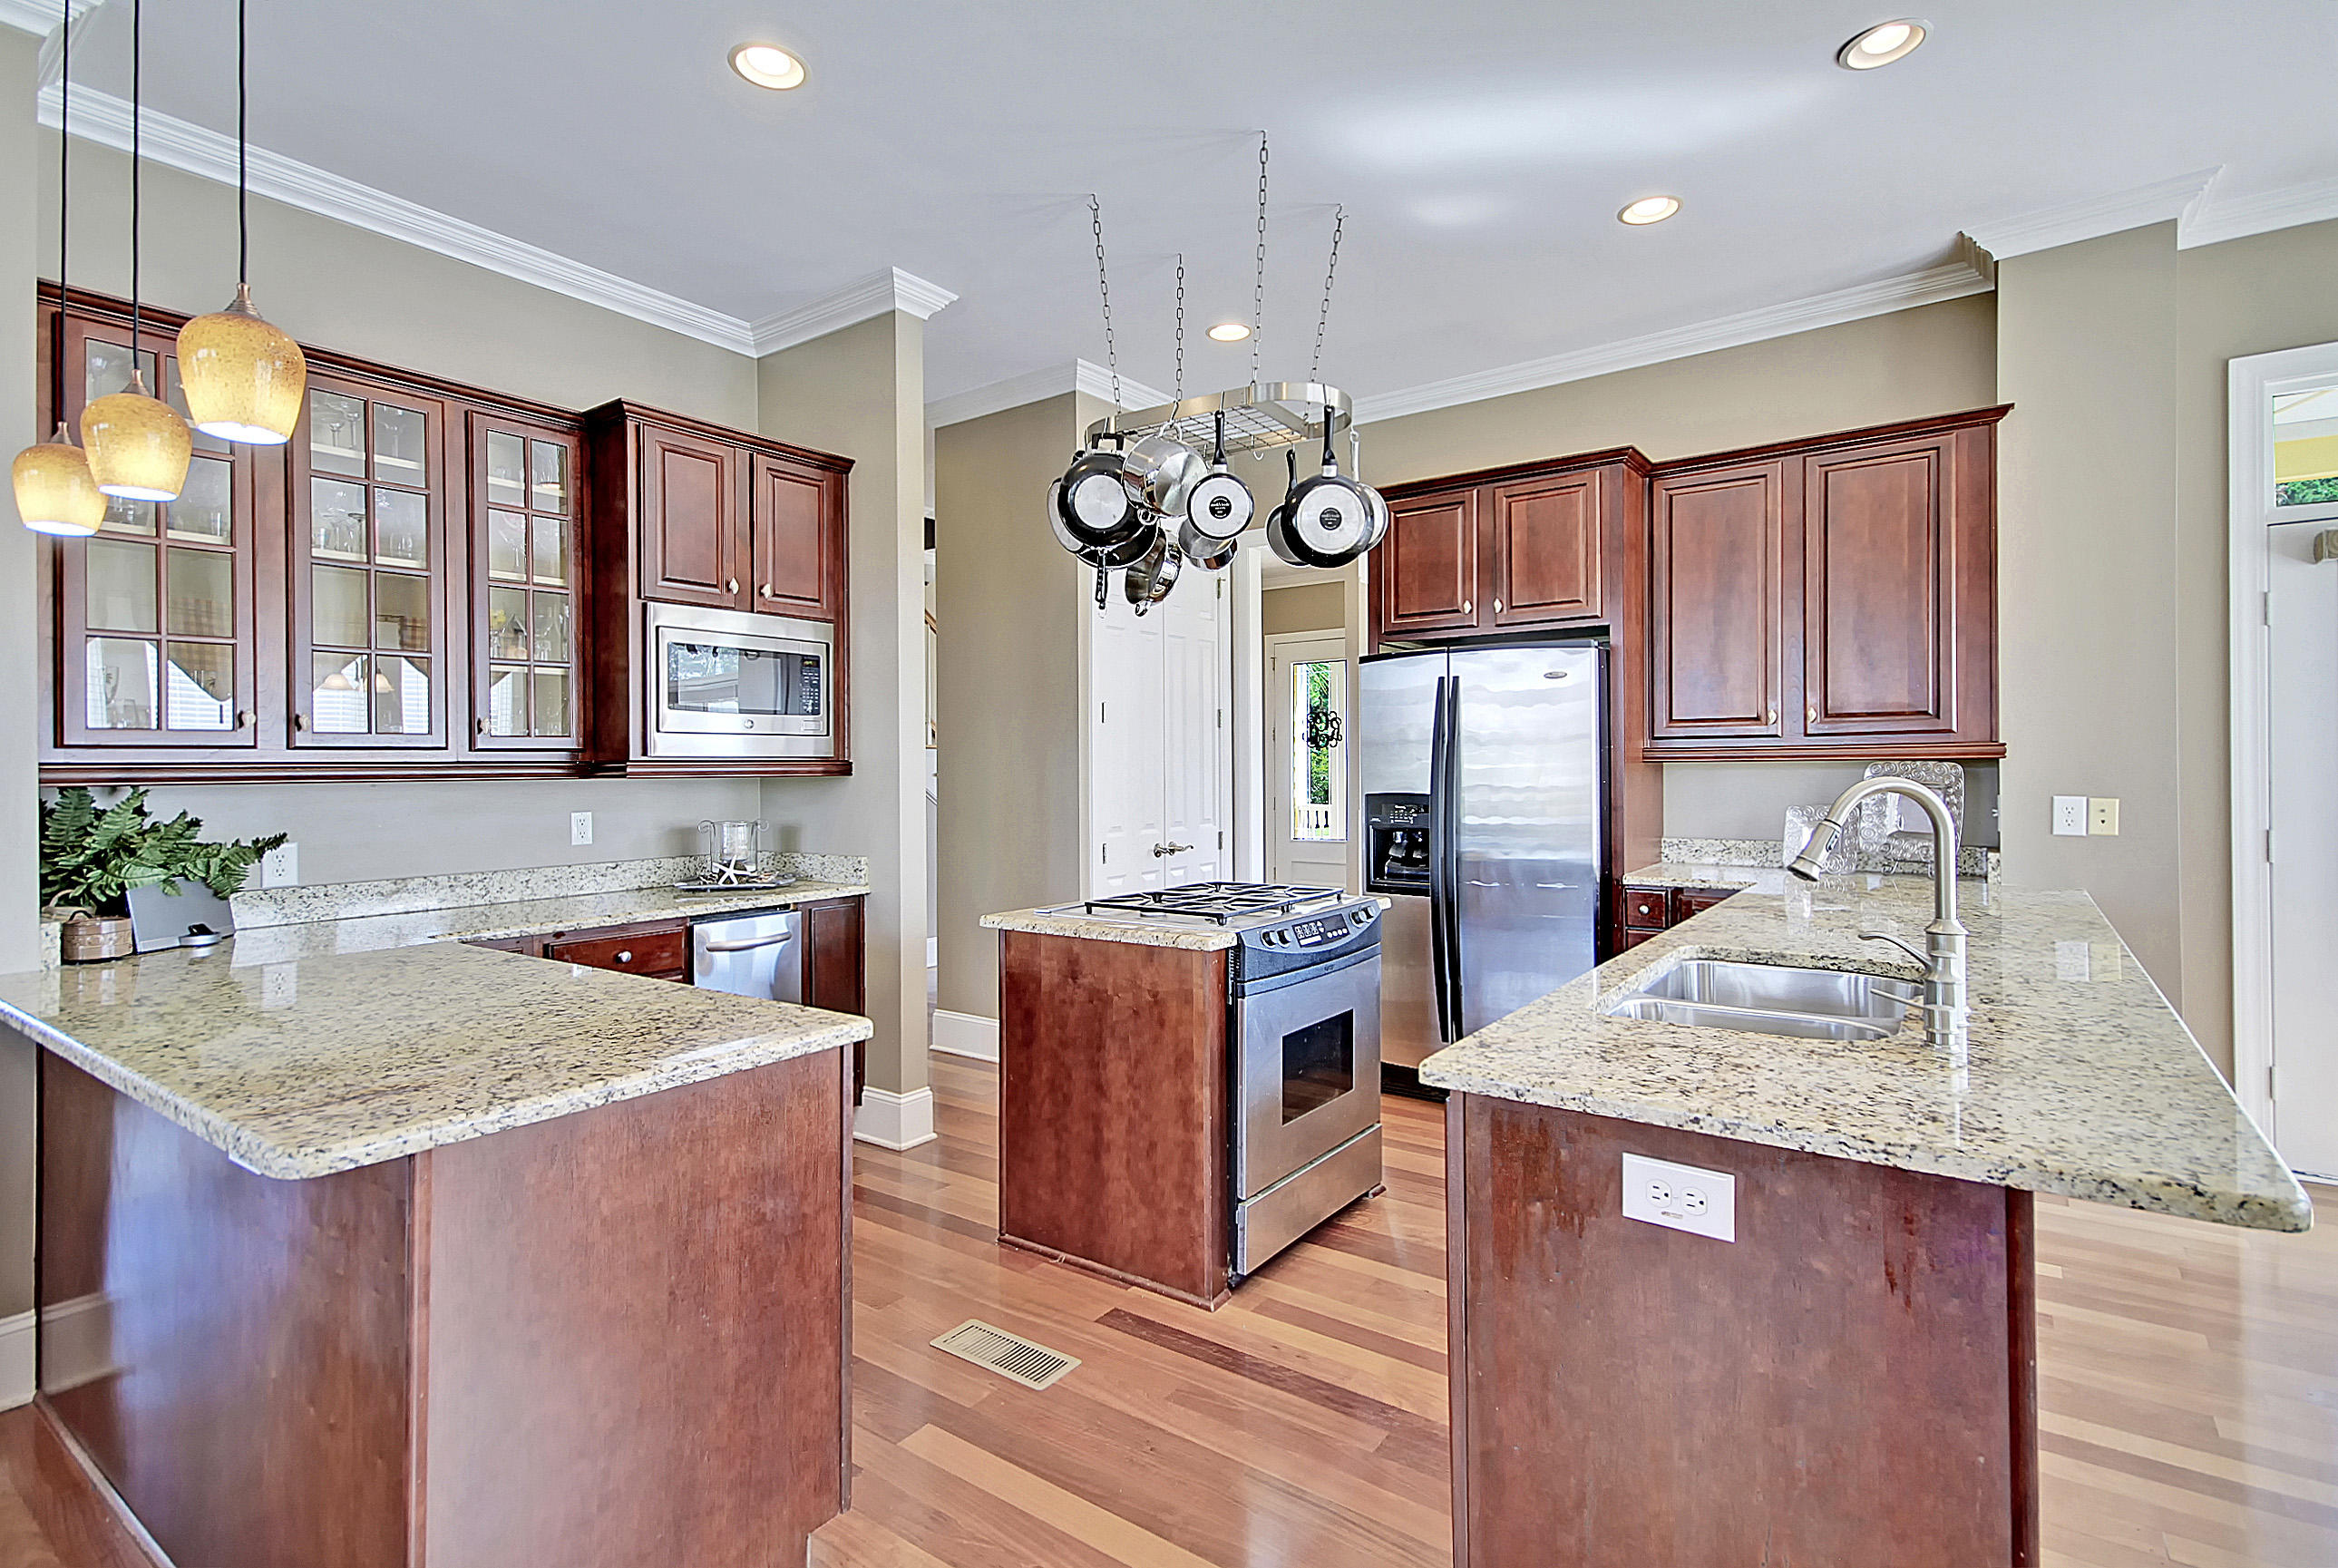 Rivertowne Country Club Homes For Sale - 1536 Rivertowne Country Club, Mount Pleasant, SC - 9